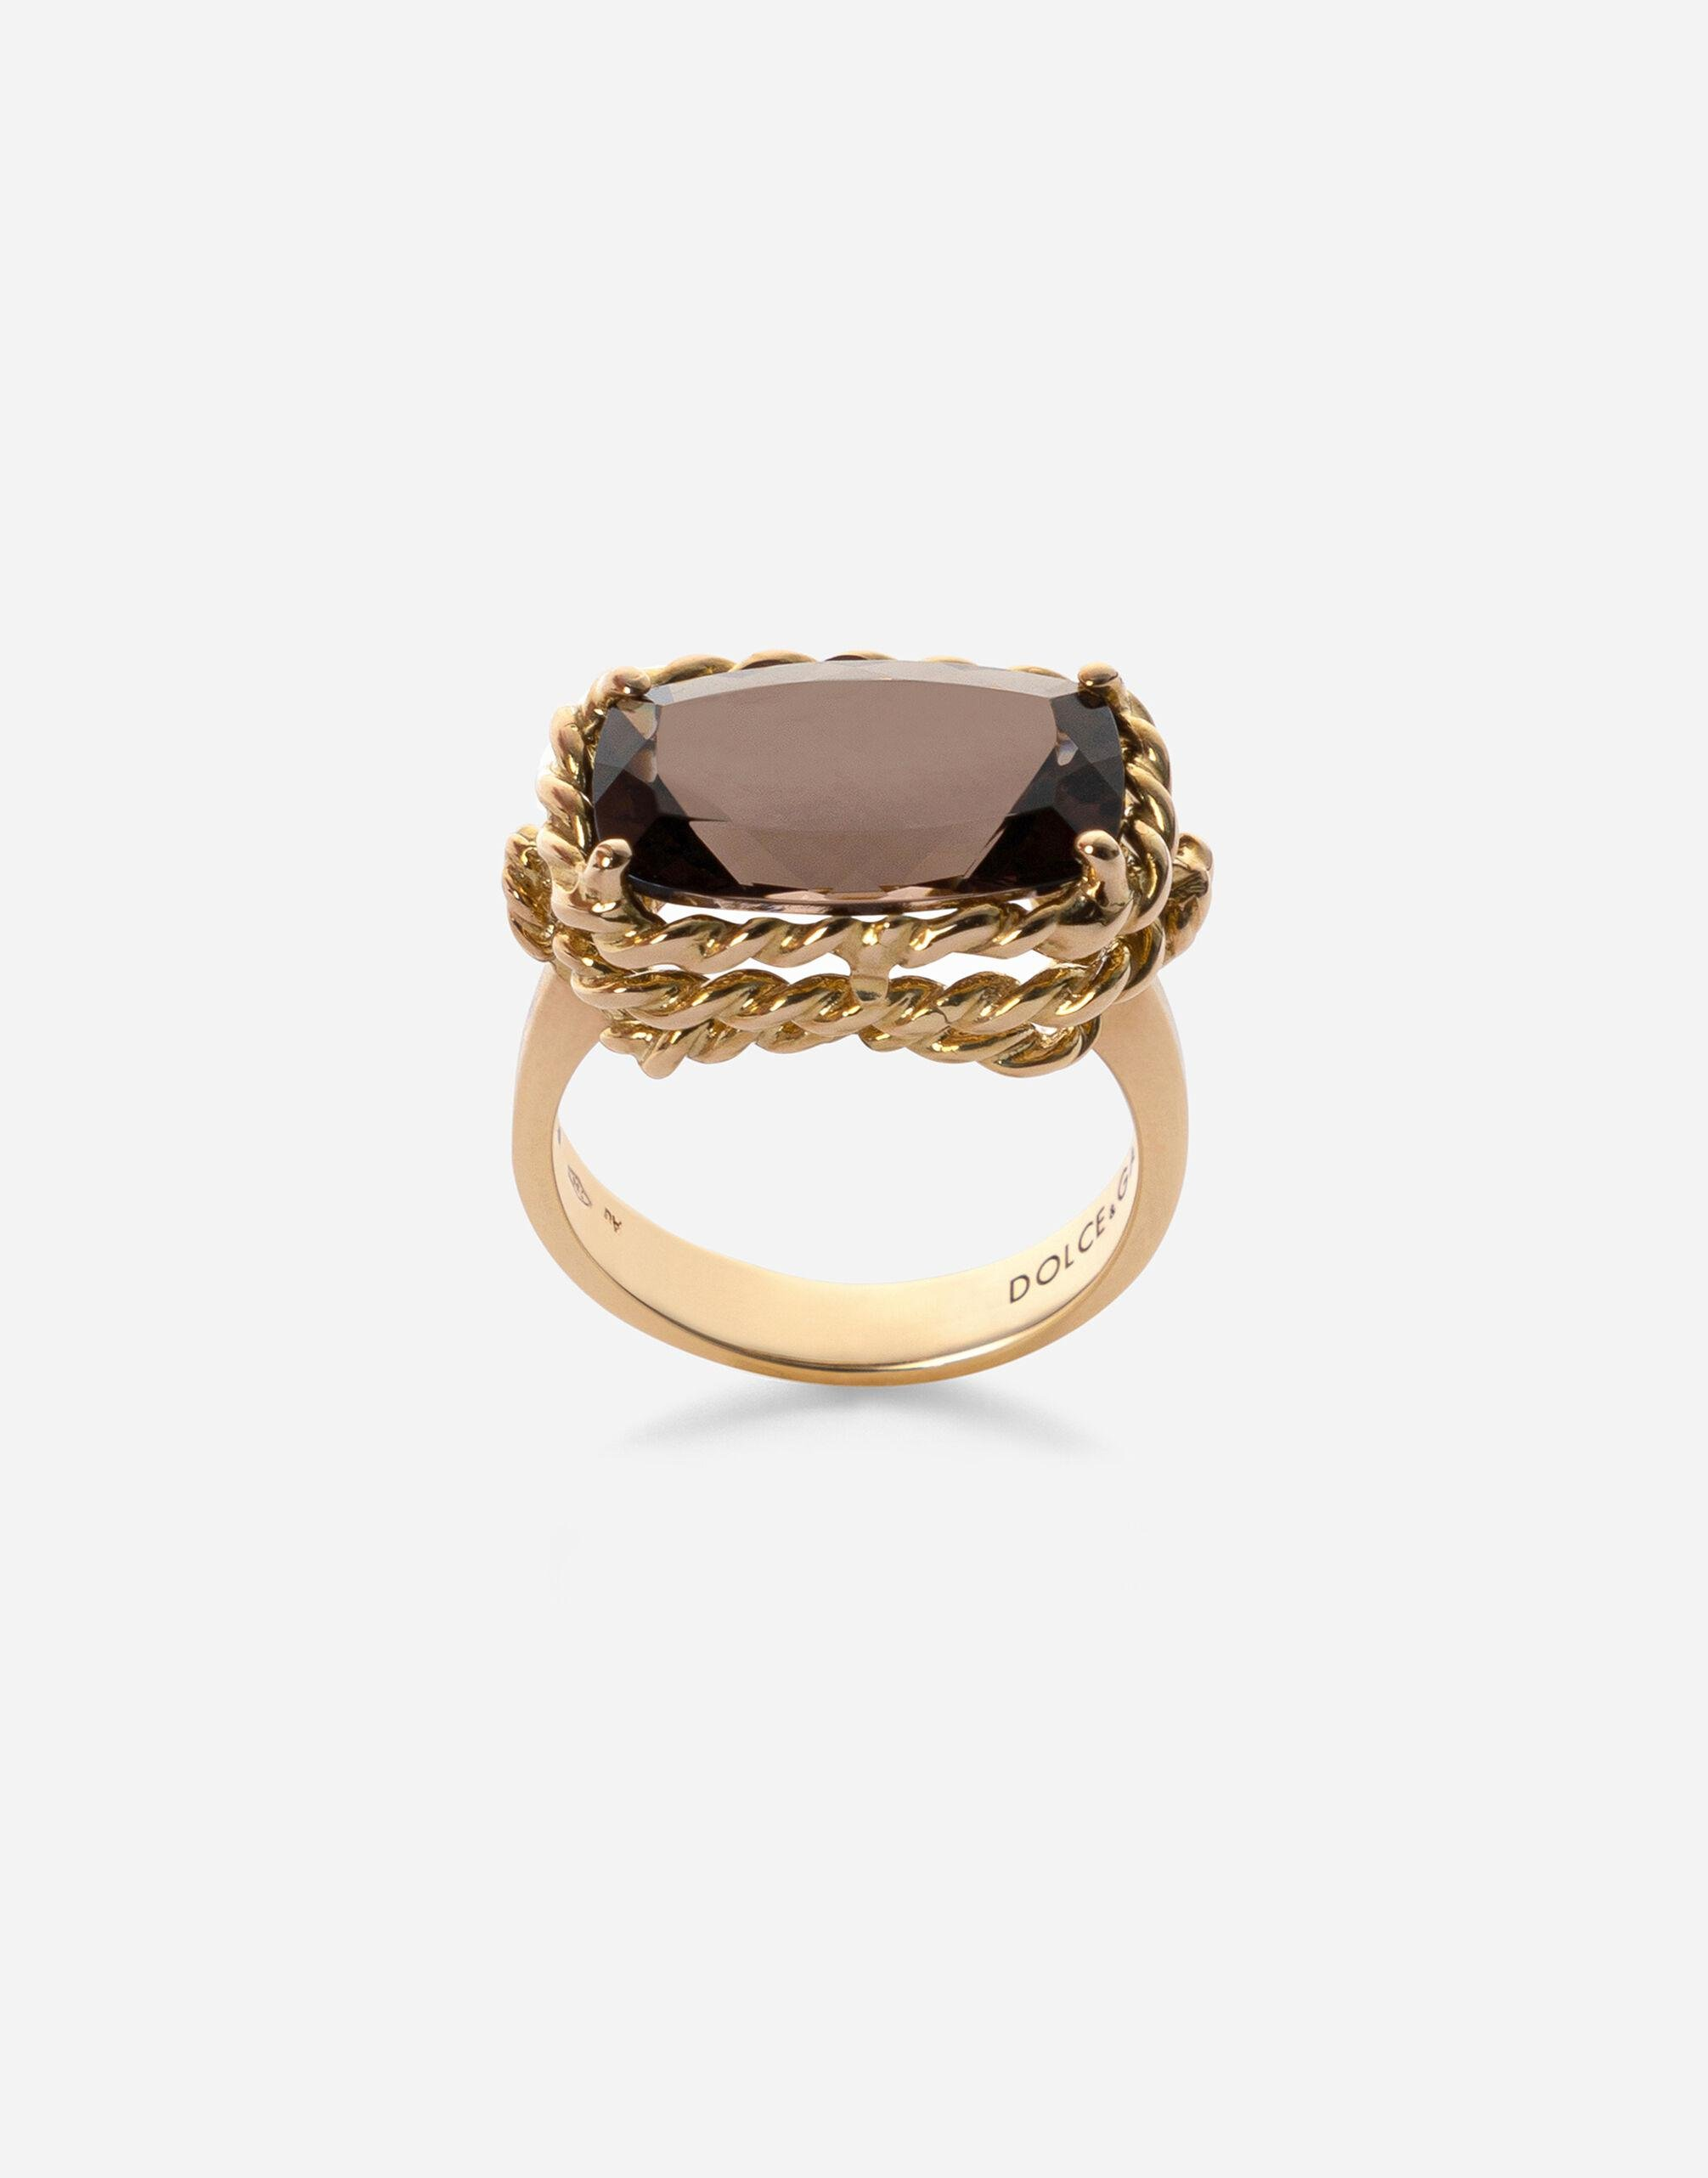 Anna ring in yellow 18kt gold with smoky quartz